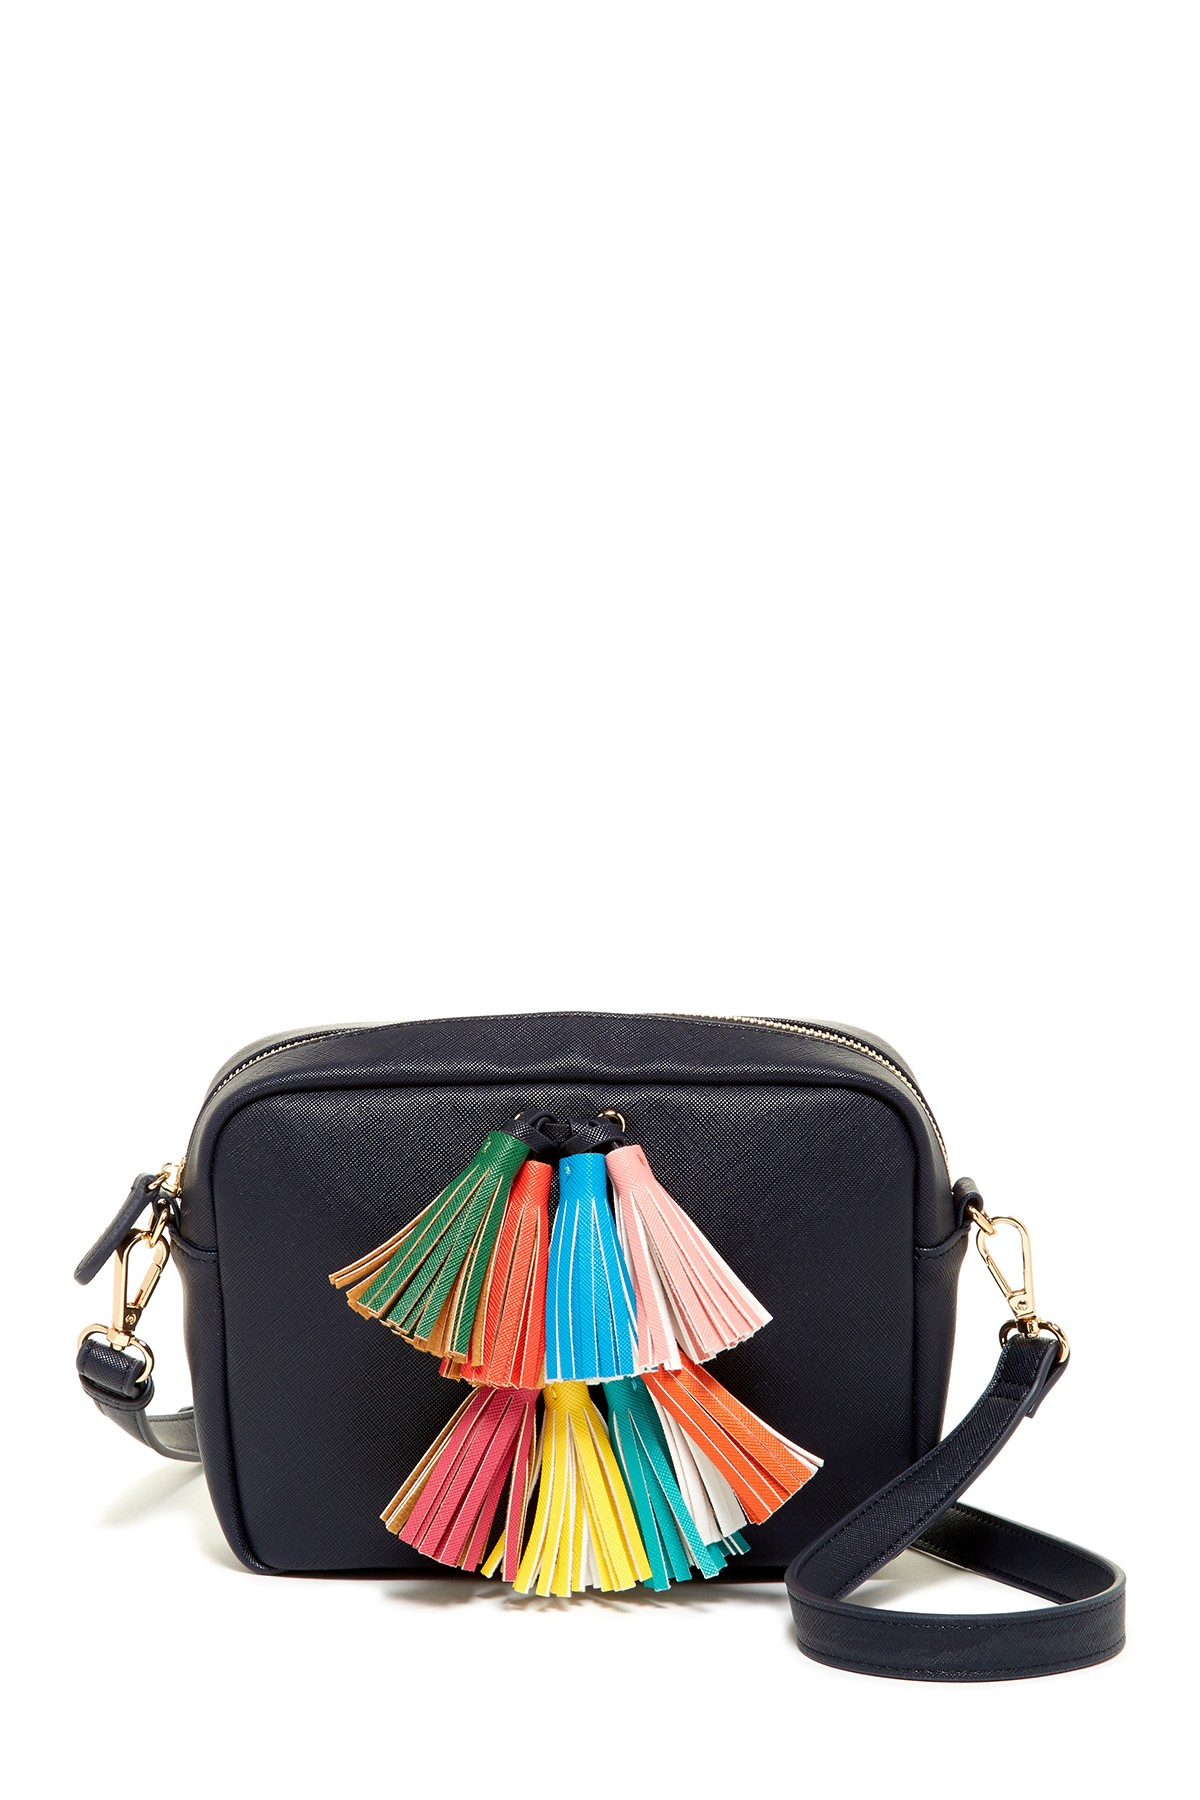 Shiraleah Marea Crossbody ($39.97). It's time to celebrate Momma.  Here is our Nordie's gift guide for items under $50! (Image: Nordstrom)